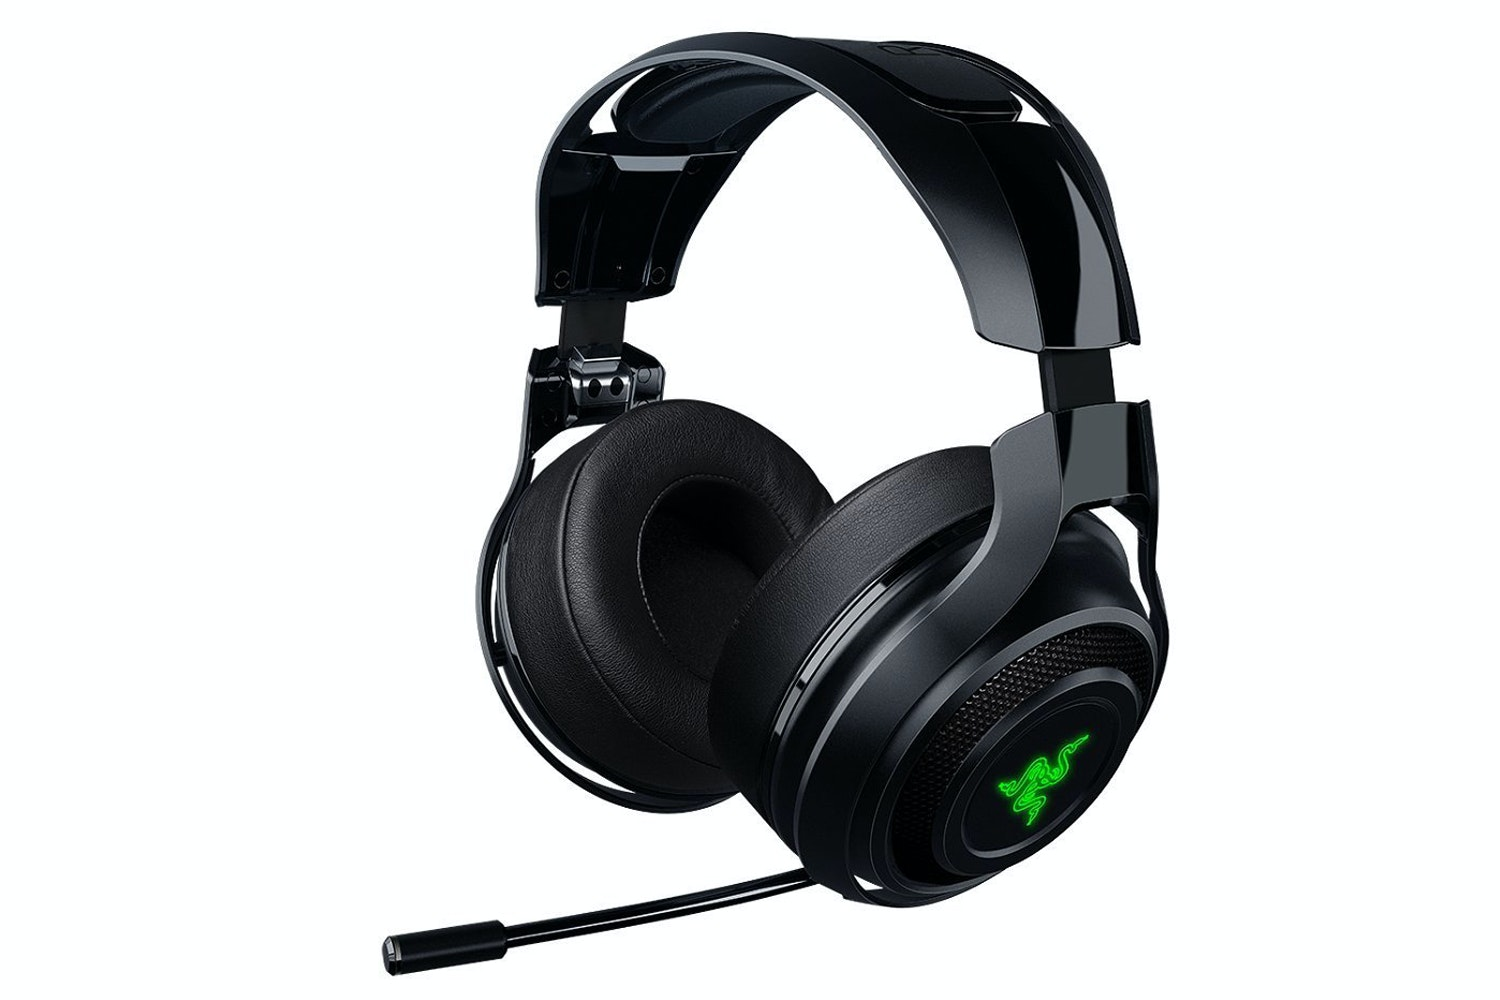 Razer ManO'War Wireless PC Gaming Headset